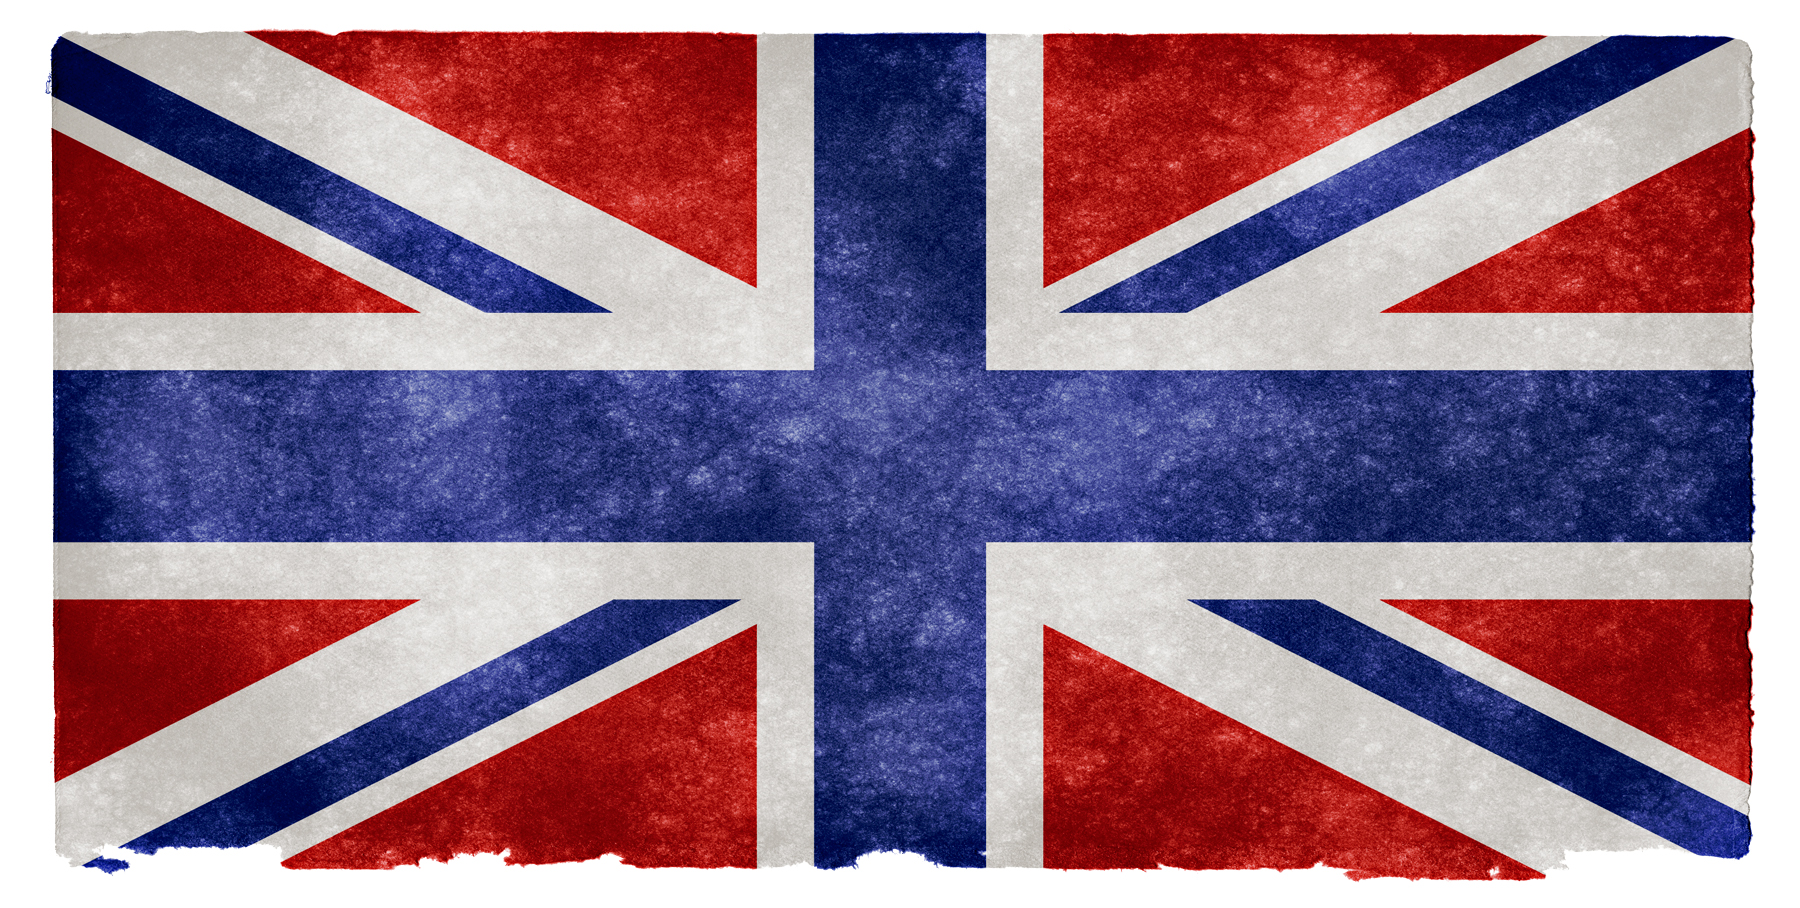 UK Grunge Flag - Inverted, Aged, Red, Inversion, Invert, HQ Photo